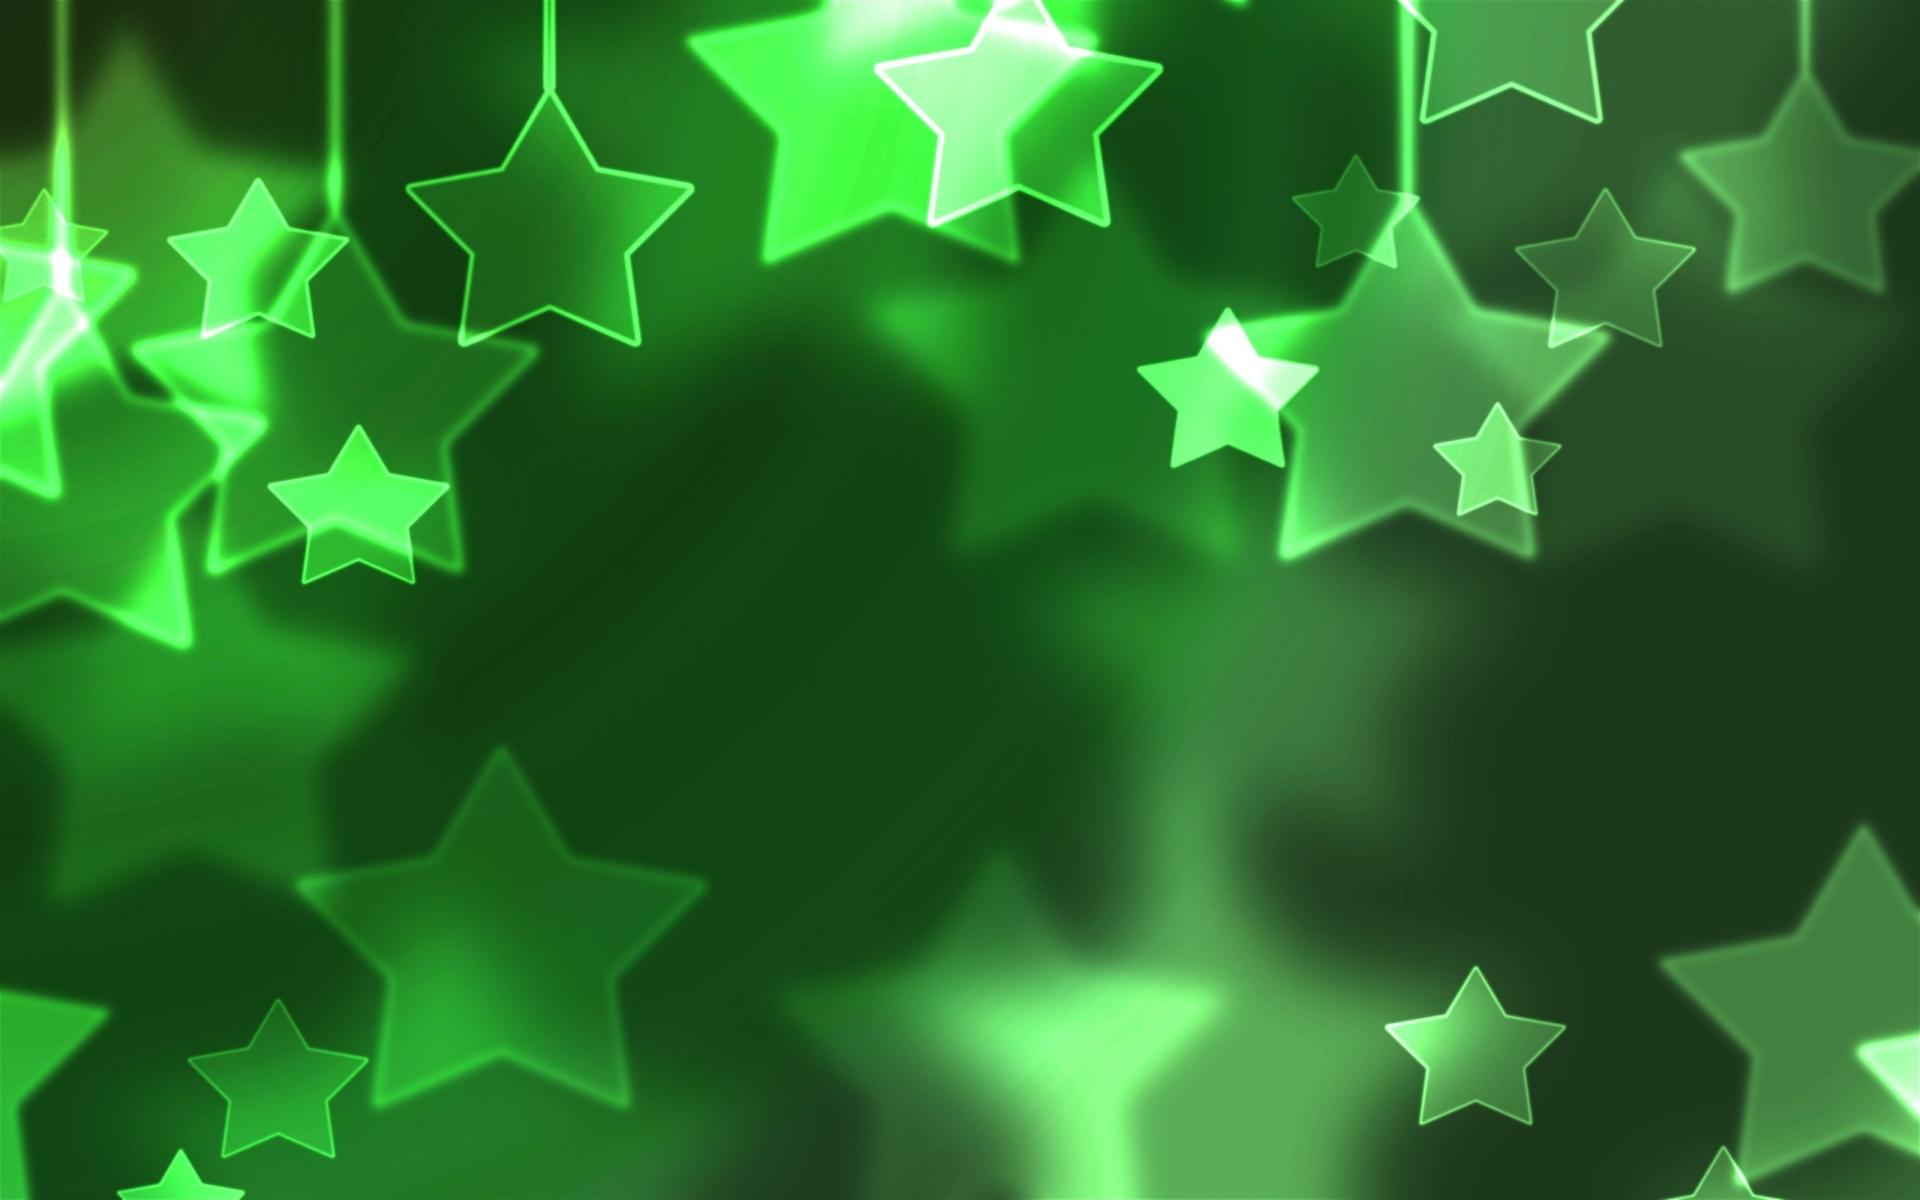 Stars Artistic wallpapers HD quality